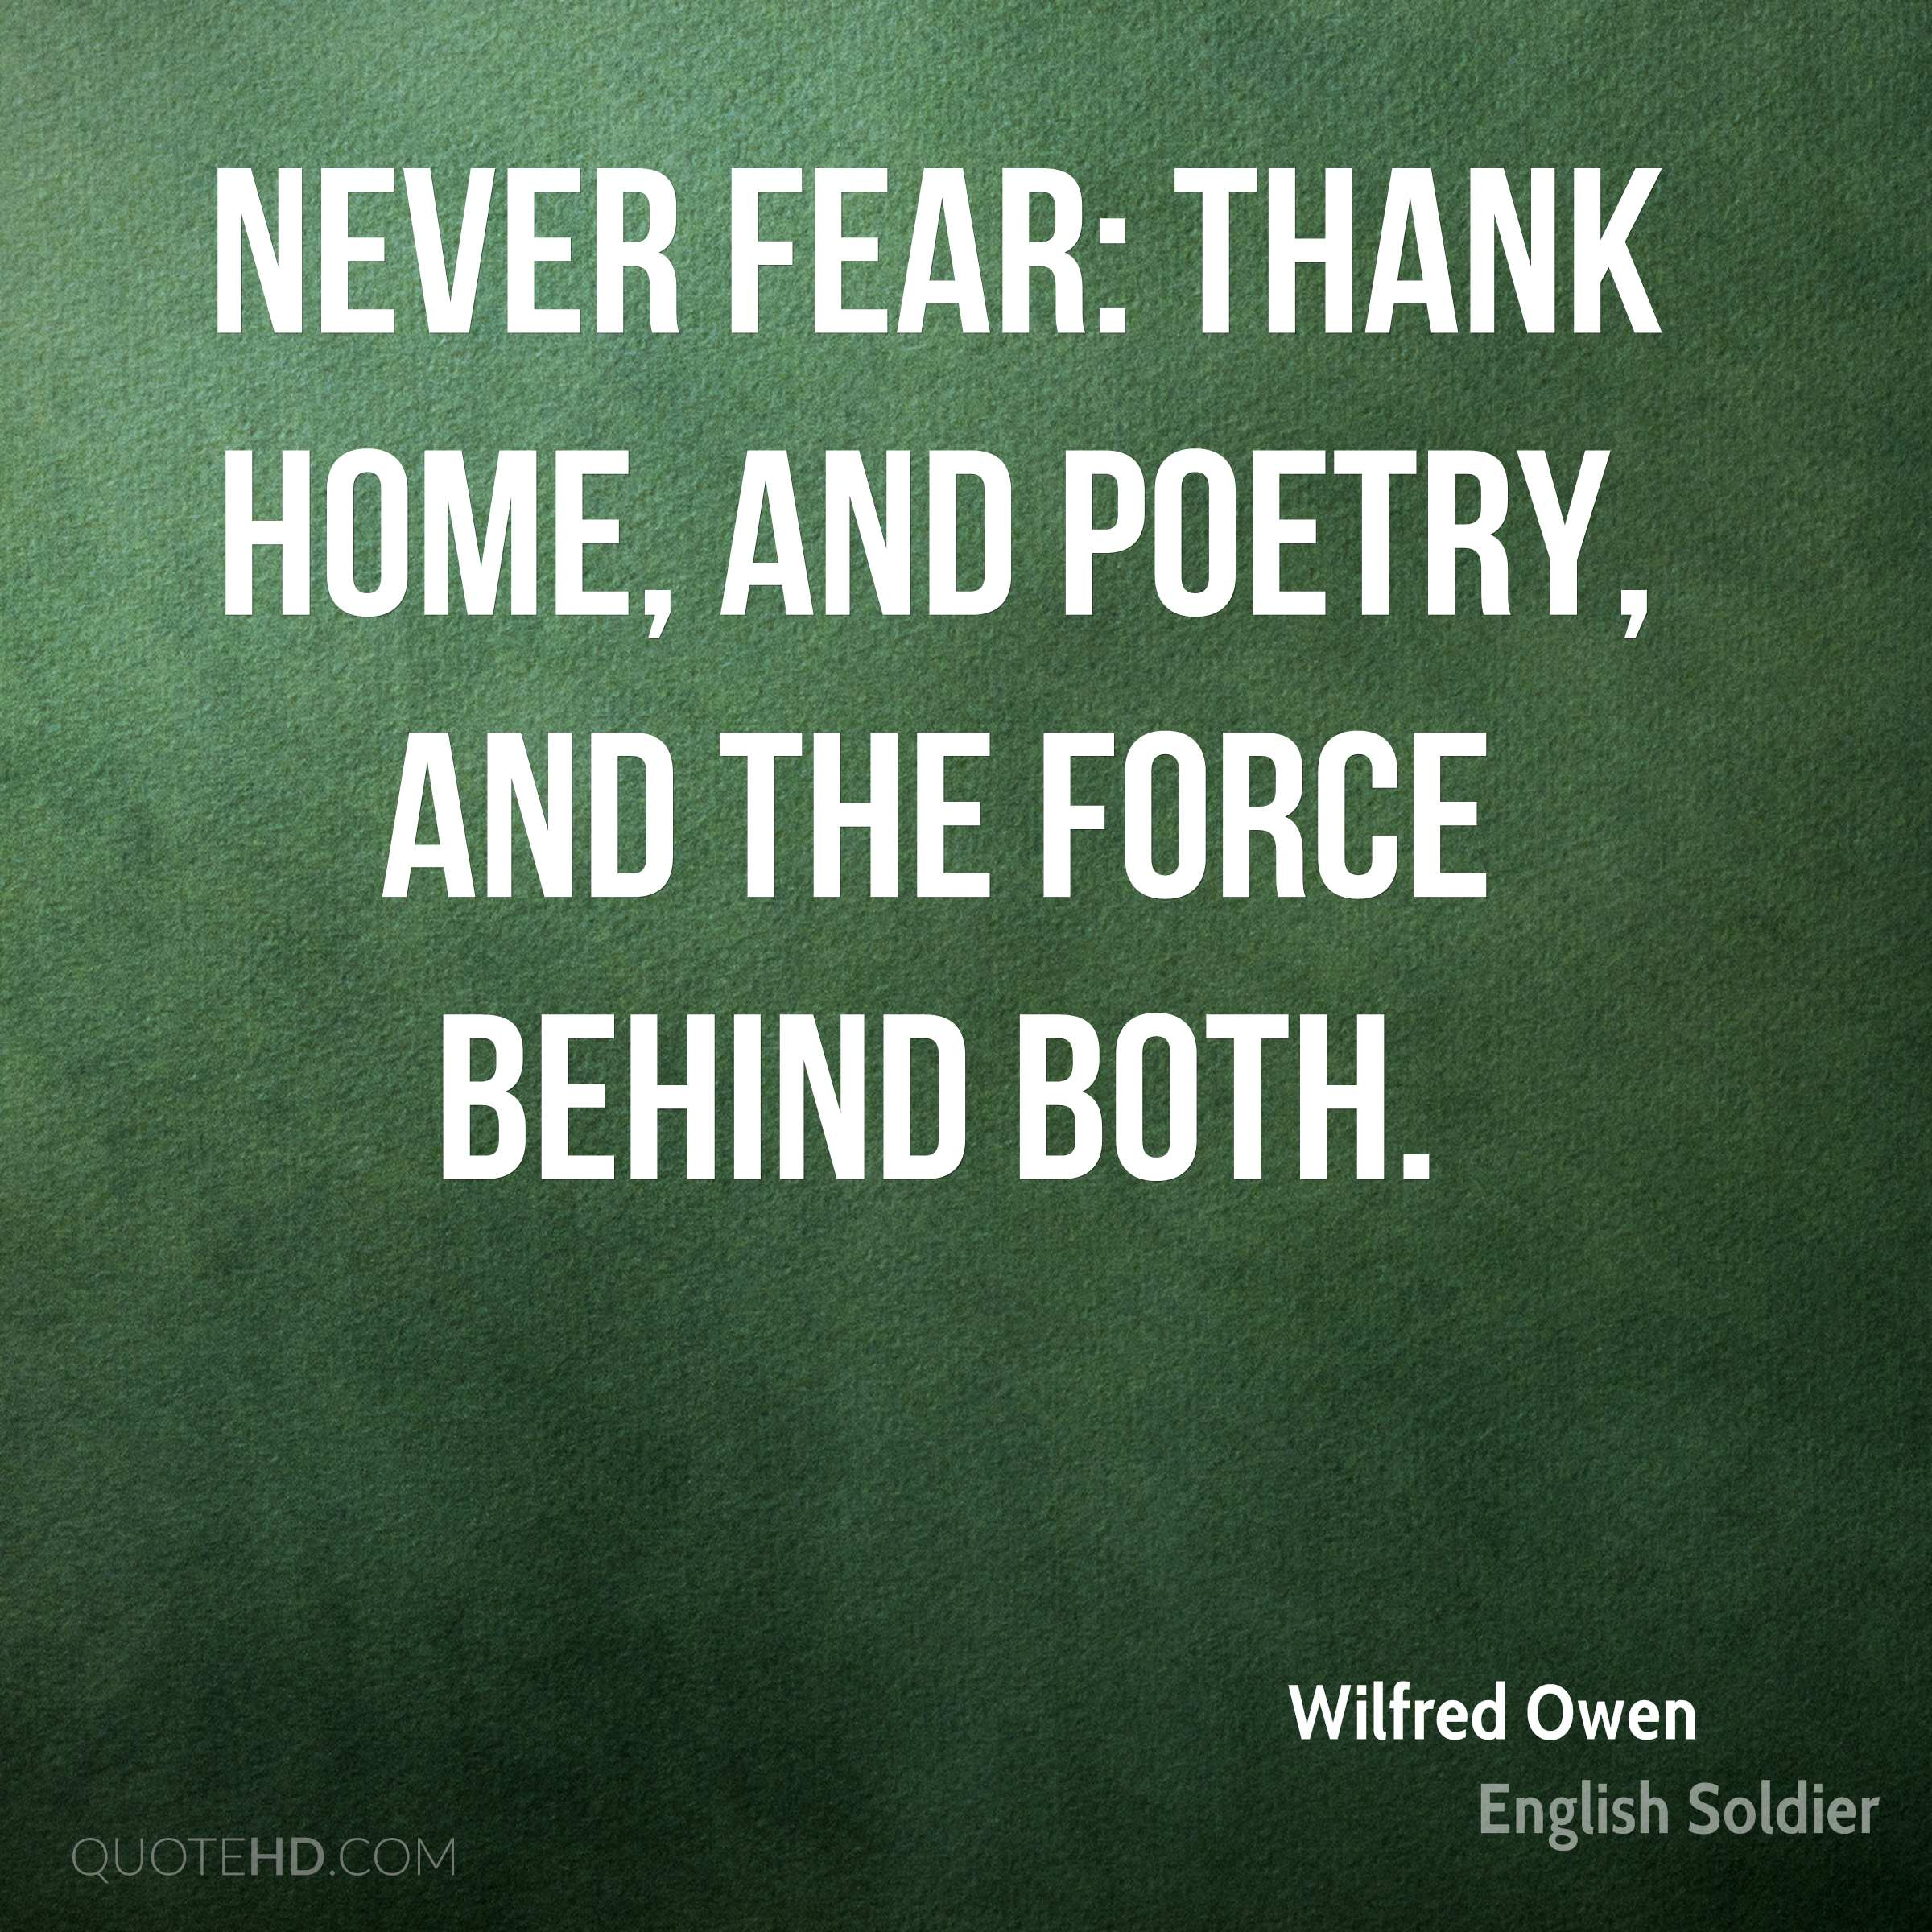 Never fear: Thank Home, and Poetry, and the Force behind both.